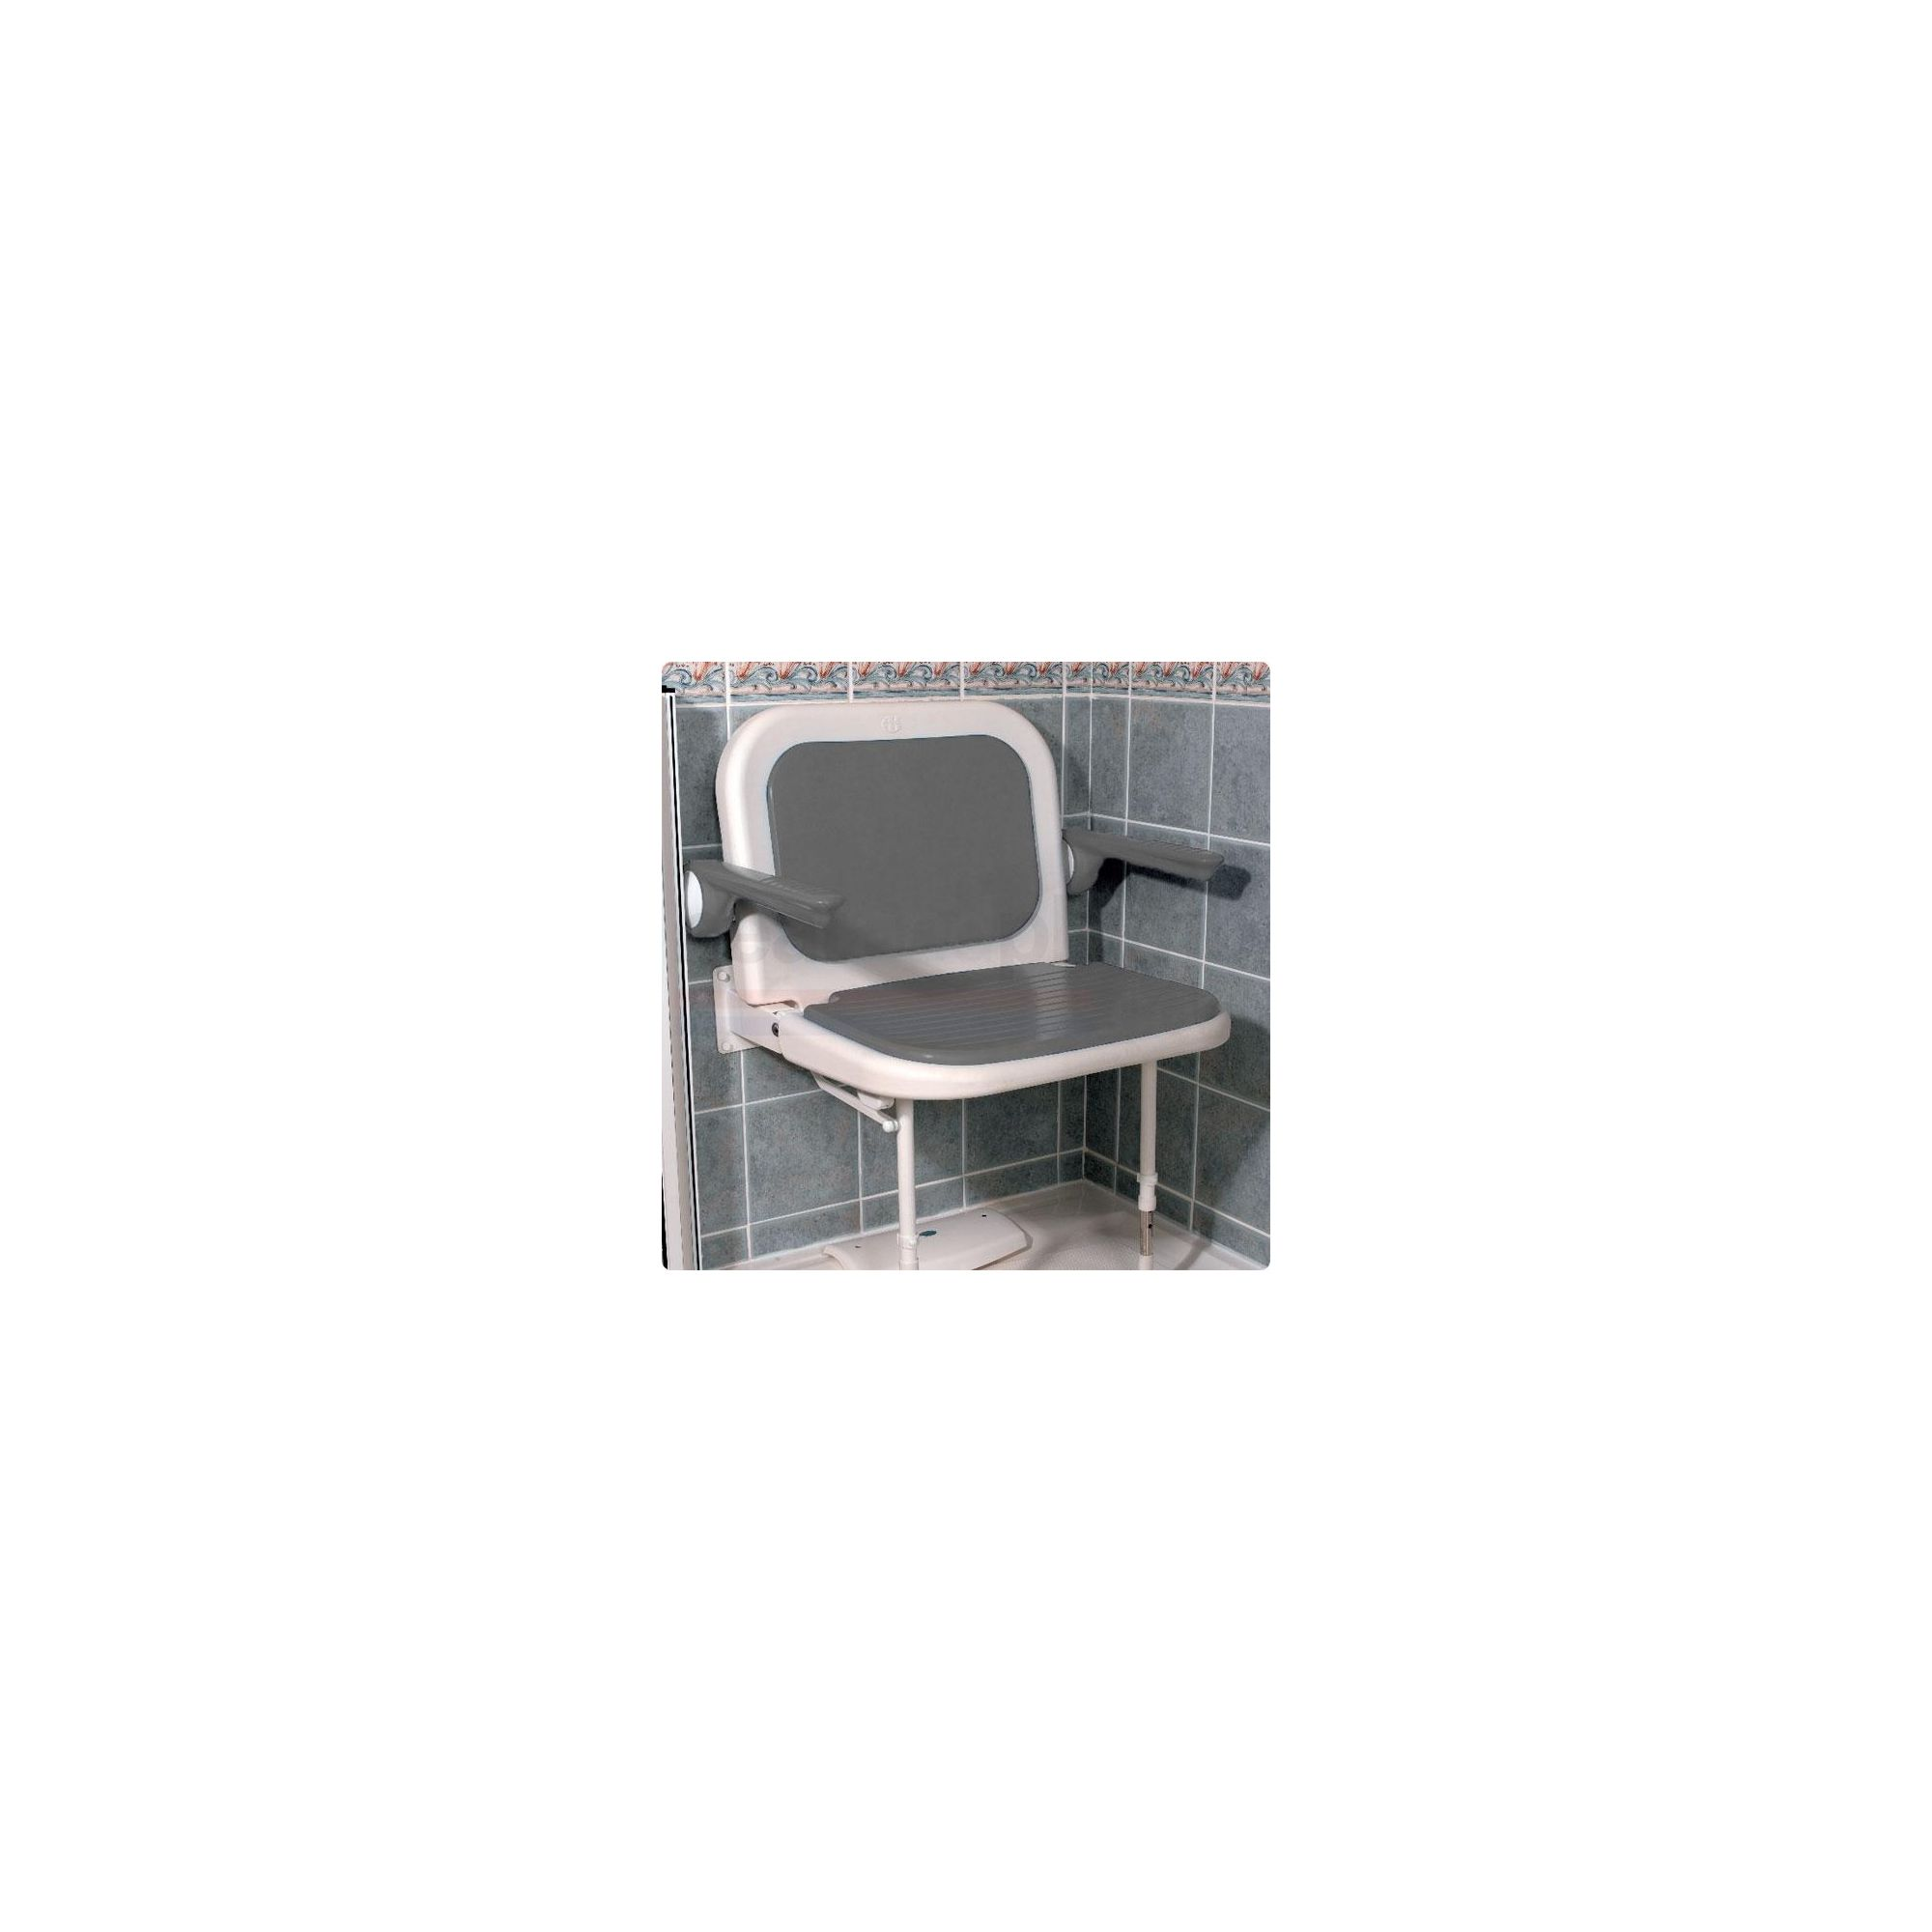 AKW 4000 Series Extra Wide Fold Up Shower Seat Grey with Back and Grey Arms at Tesco Direct